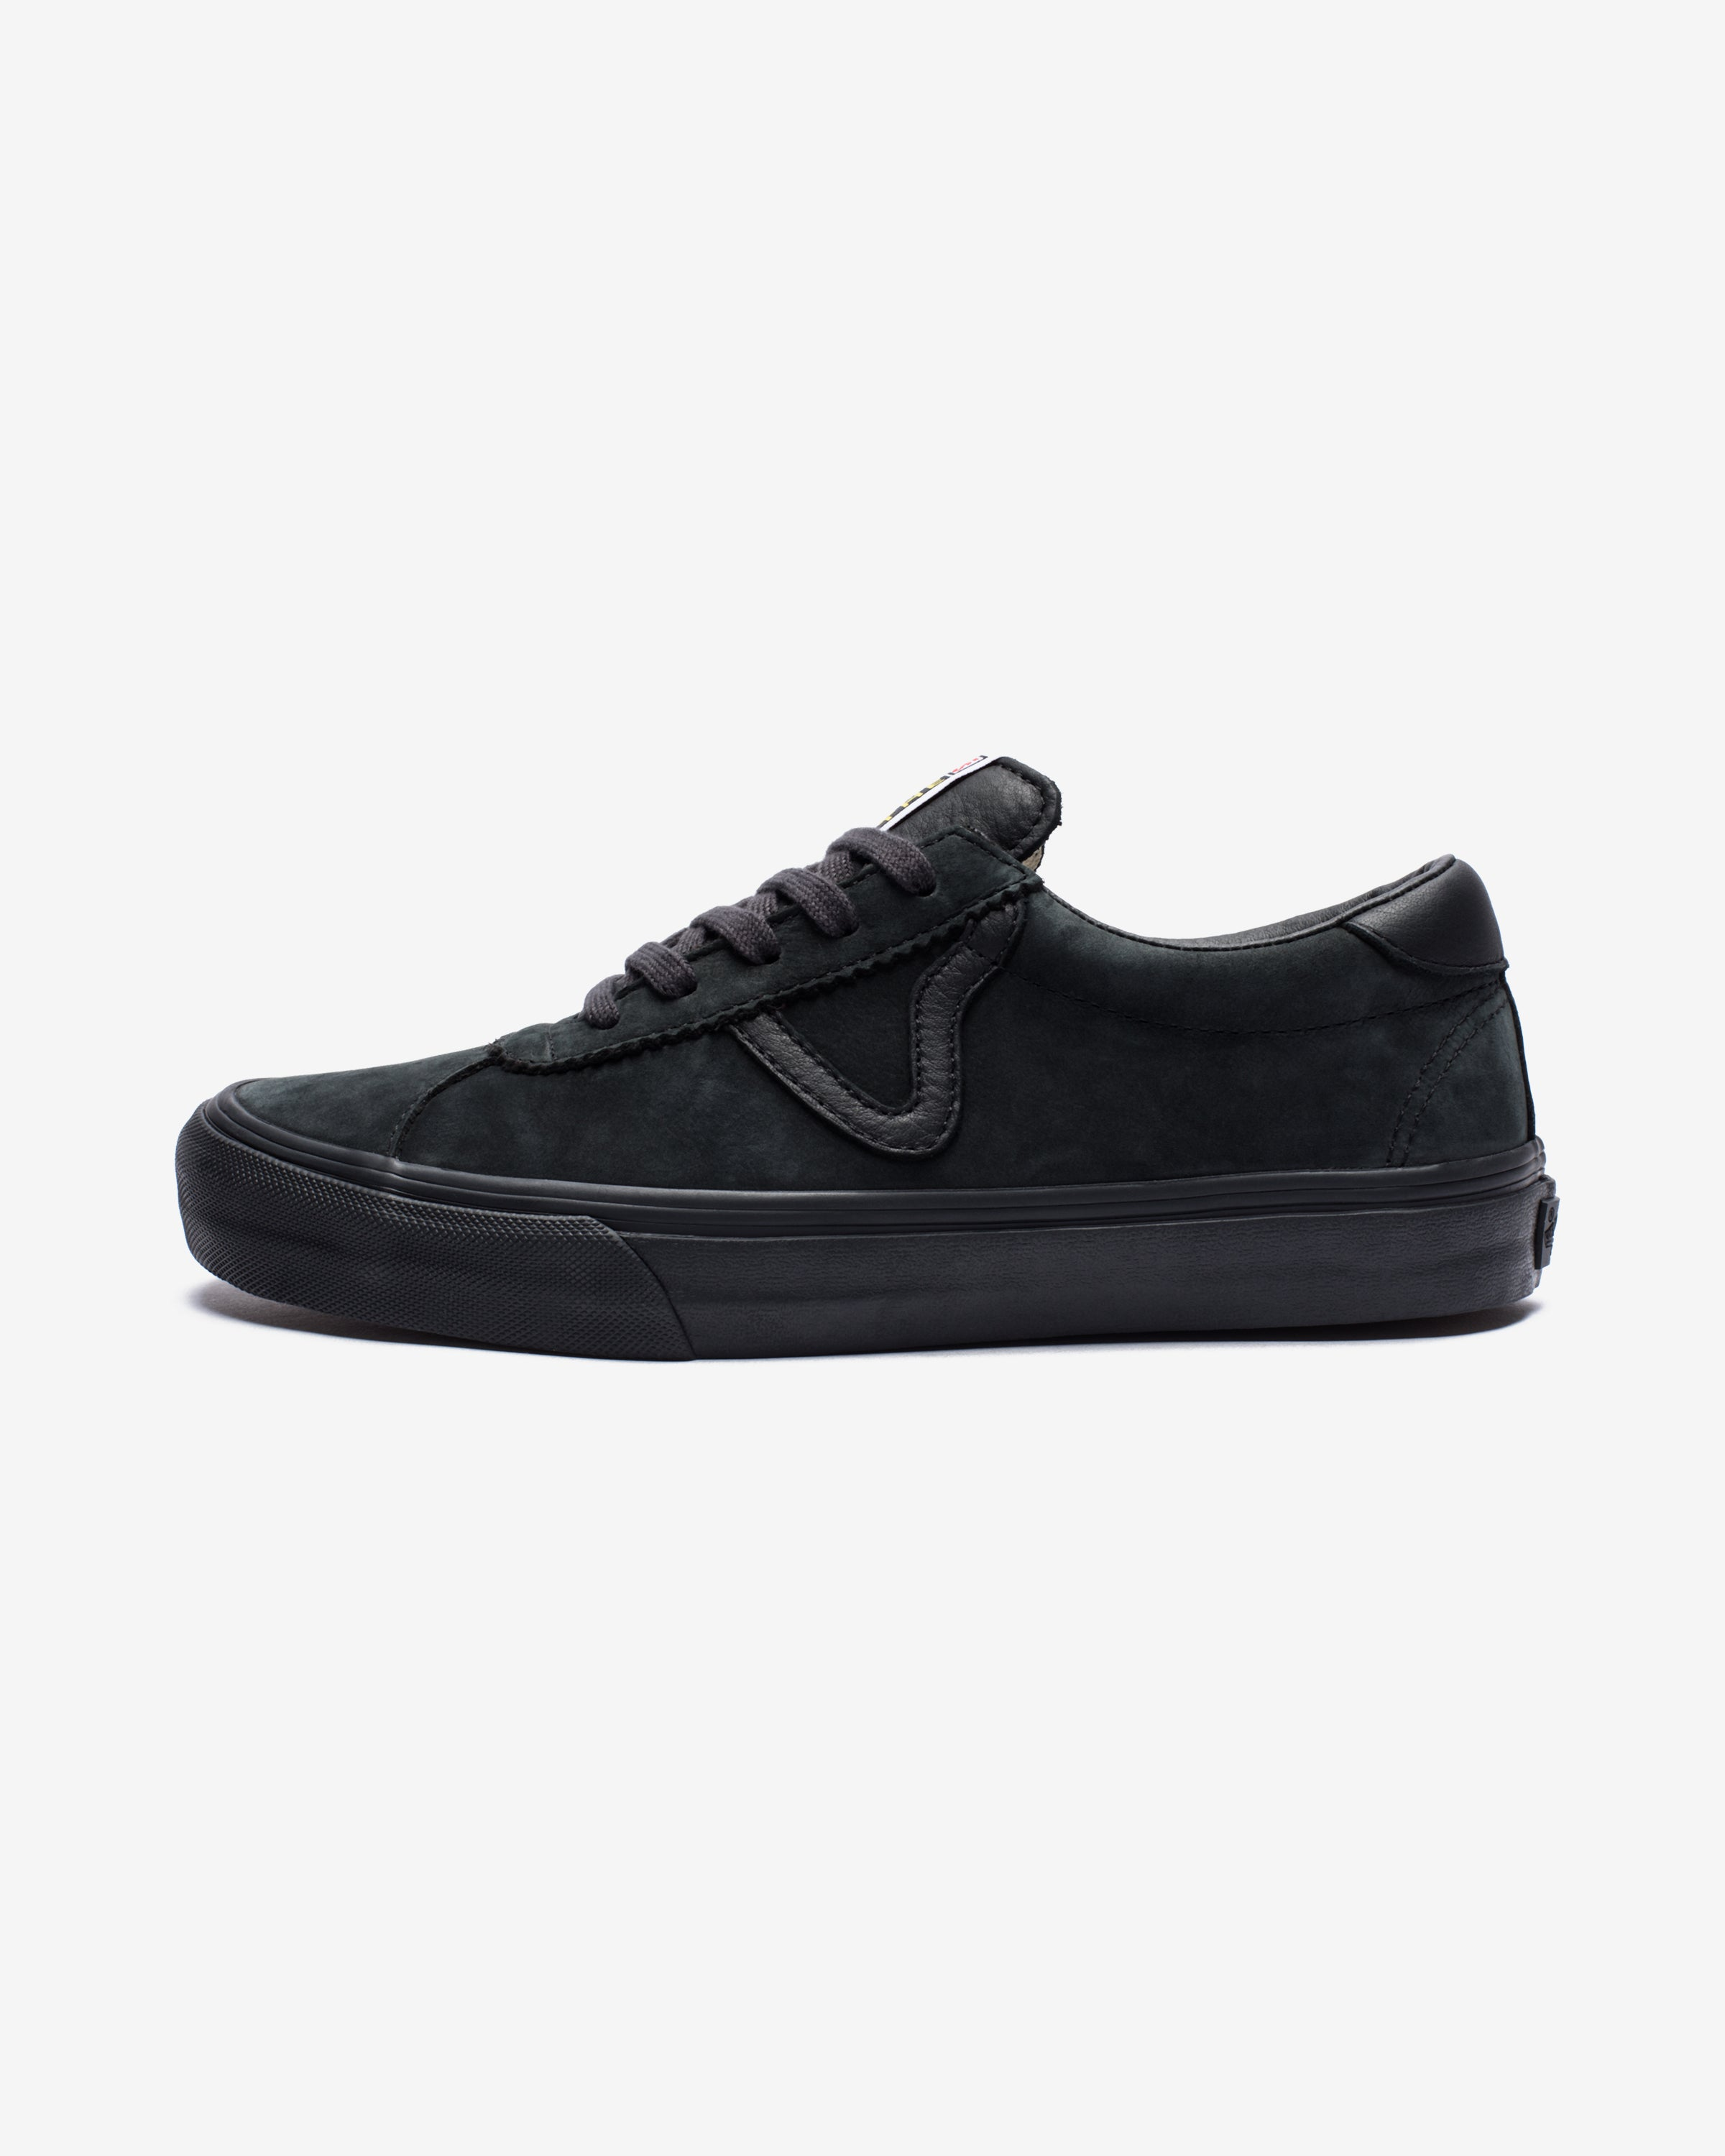 EPOCH SPORT LX (NUBUCK/LEATHER)  - RAVEN/ BLACK